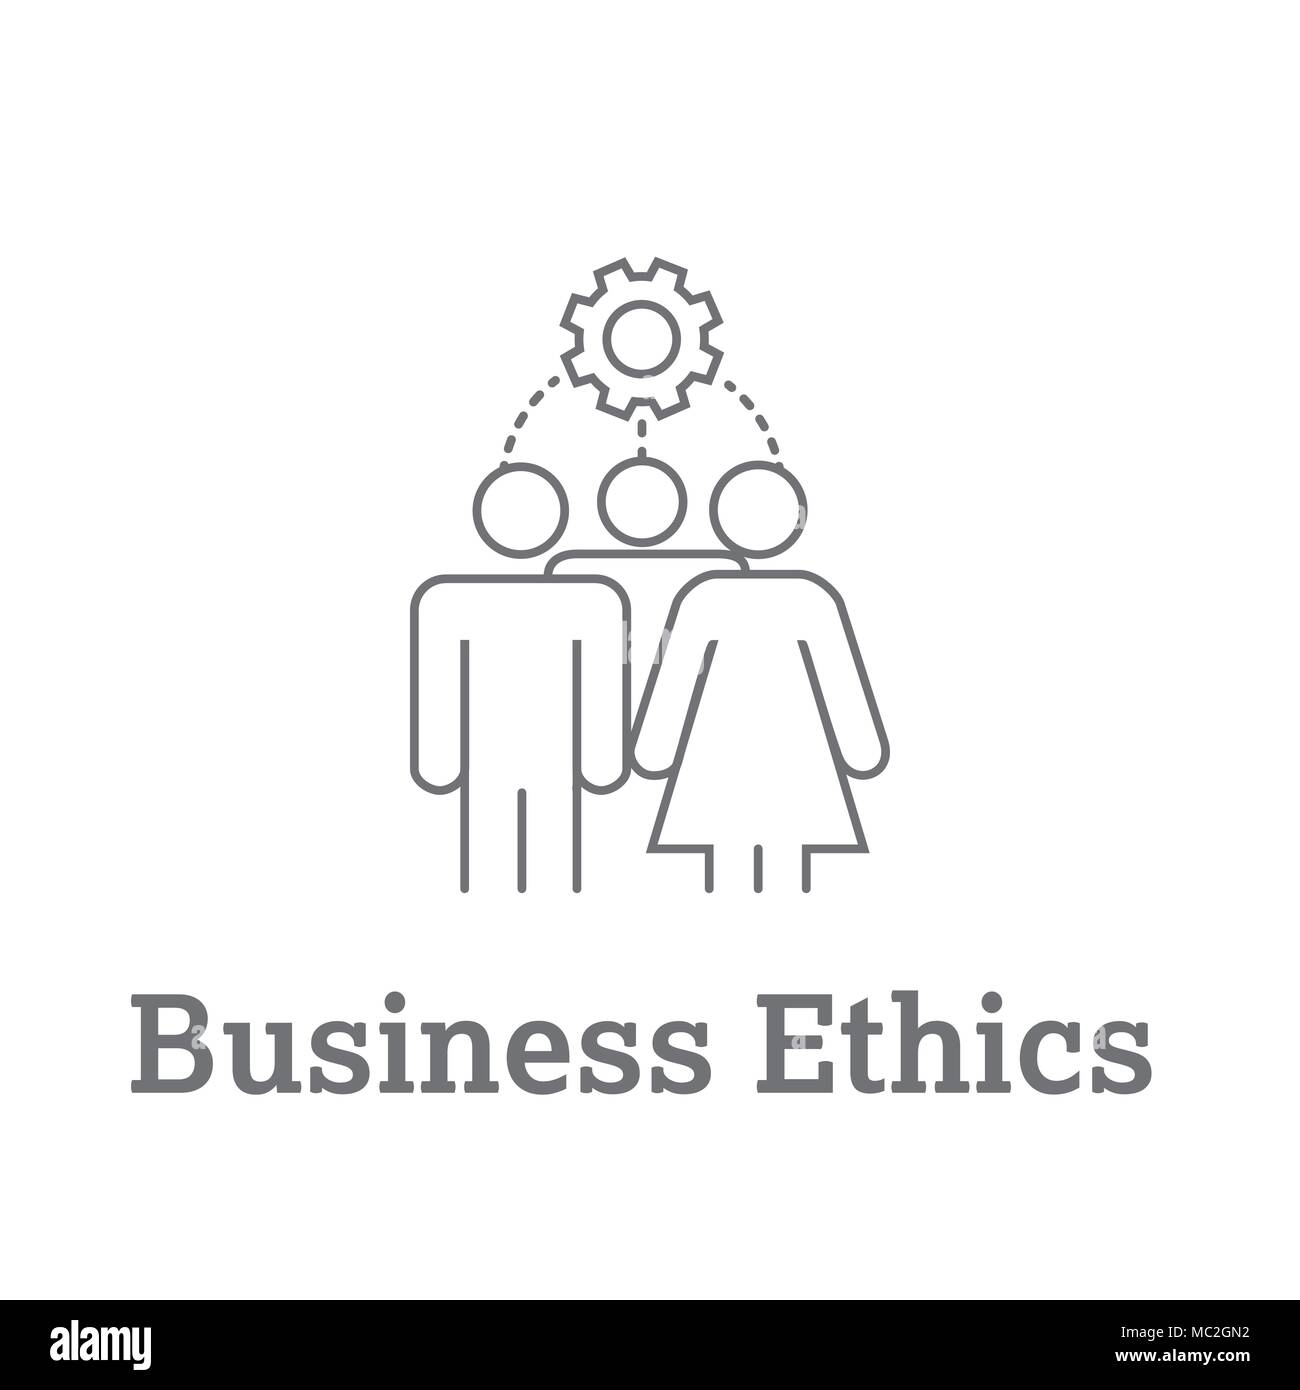 Business Ethics Solid Icon with people sharing ideas. - Stock Image